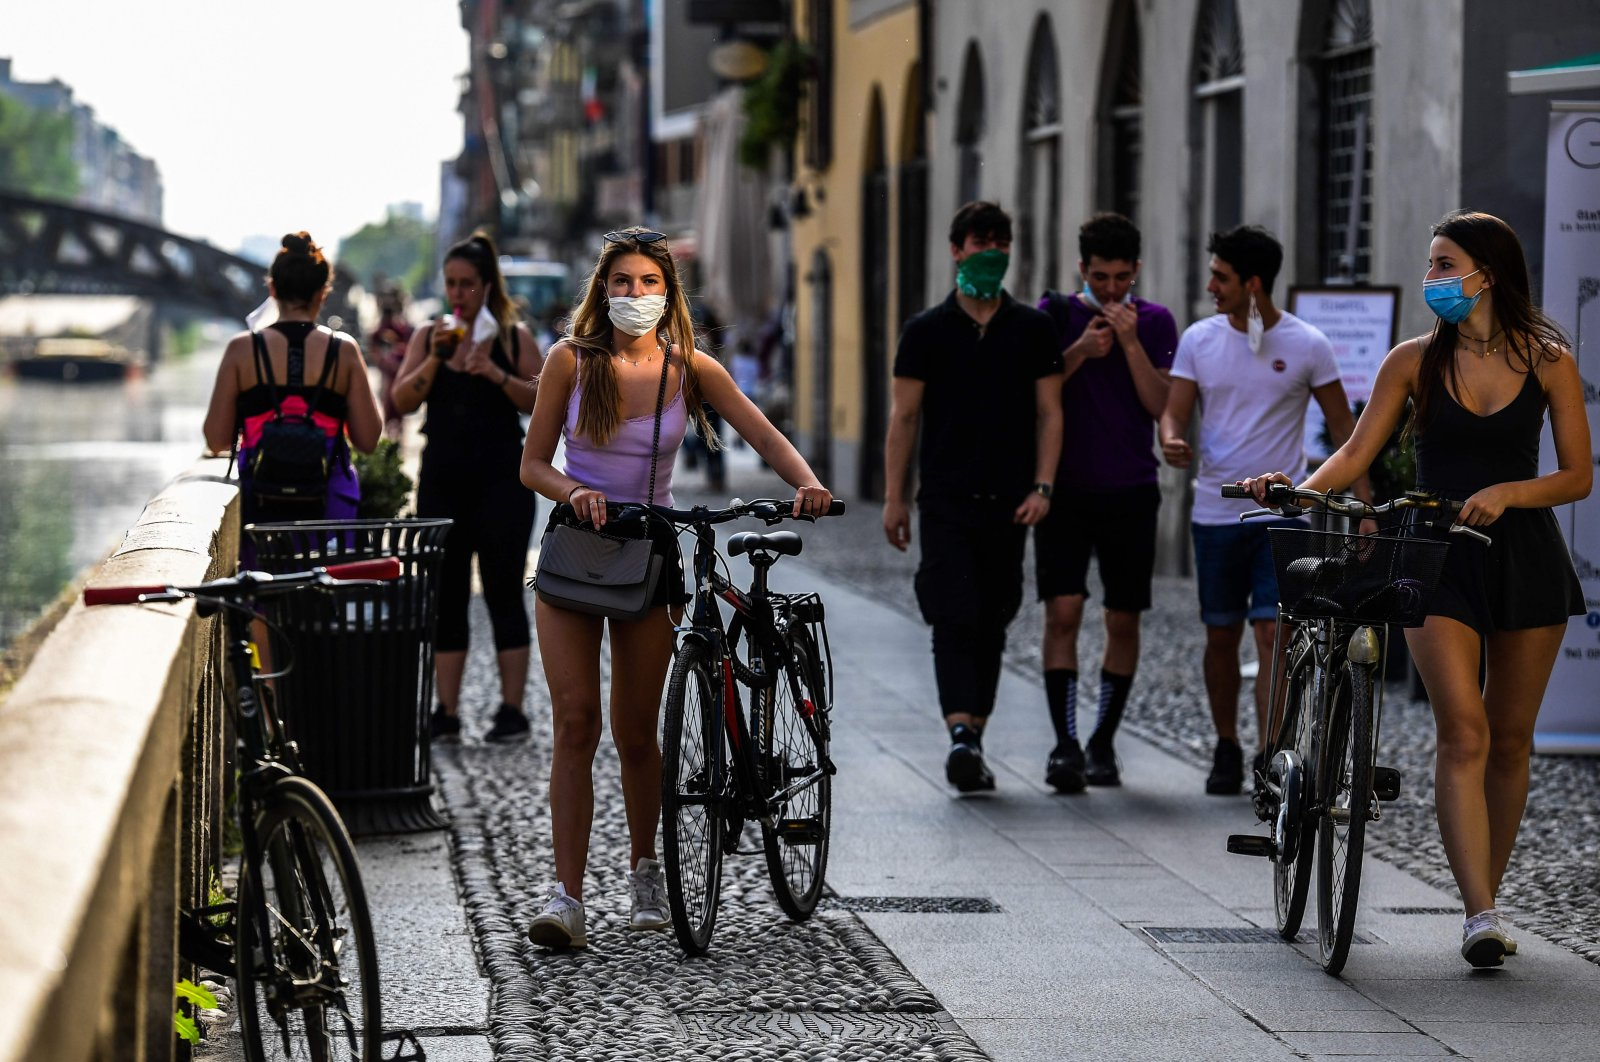 People stroll along the Navigli canals in Milan, Italy, May 8, 2020. (AFP Photo)